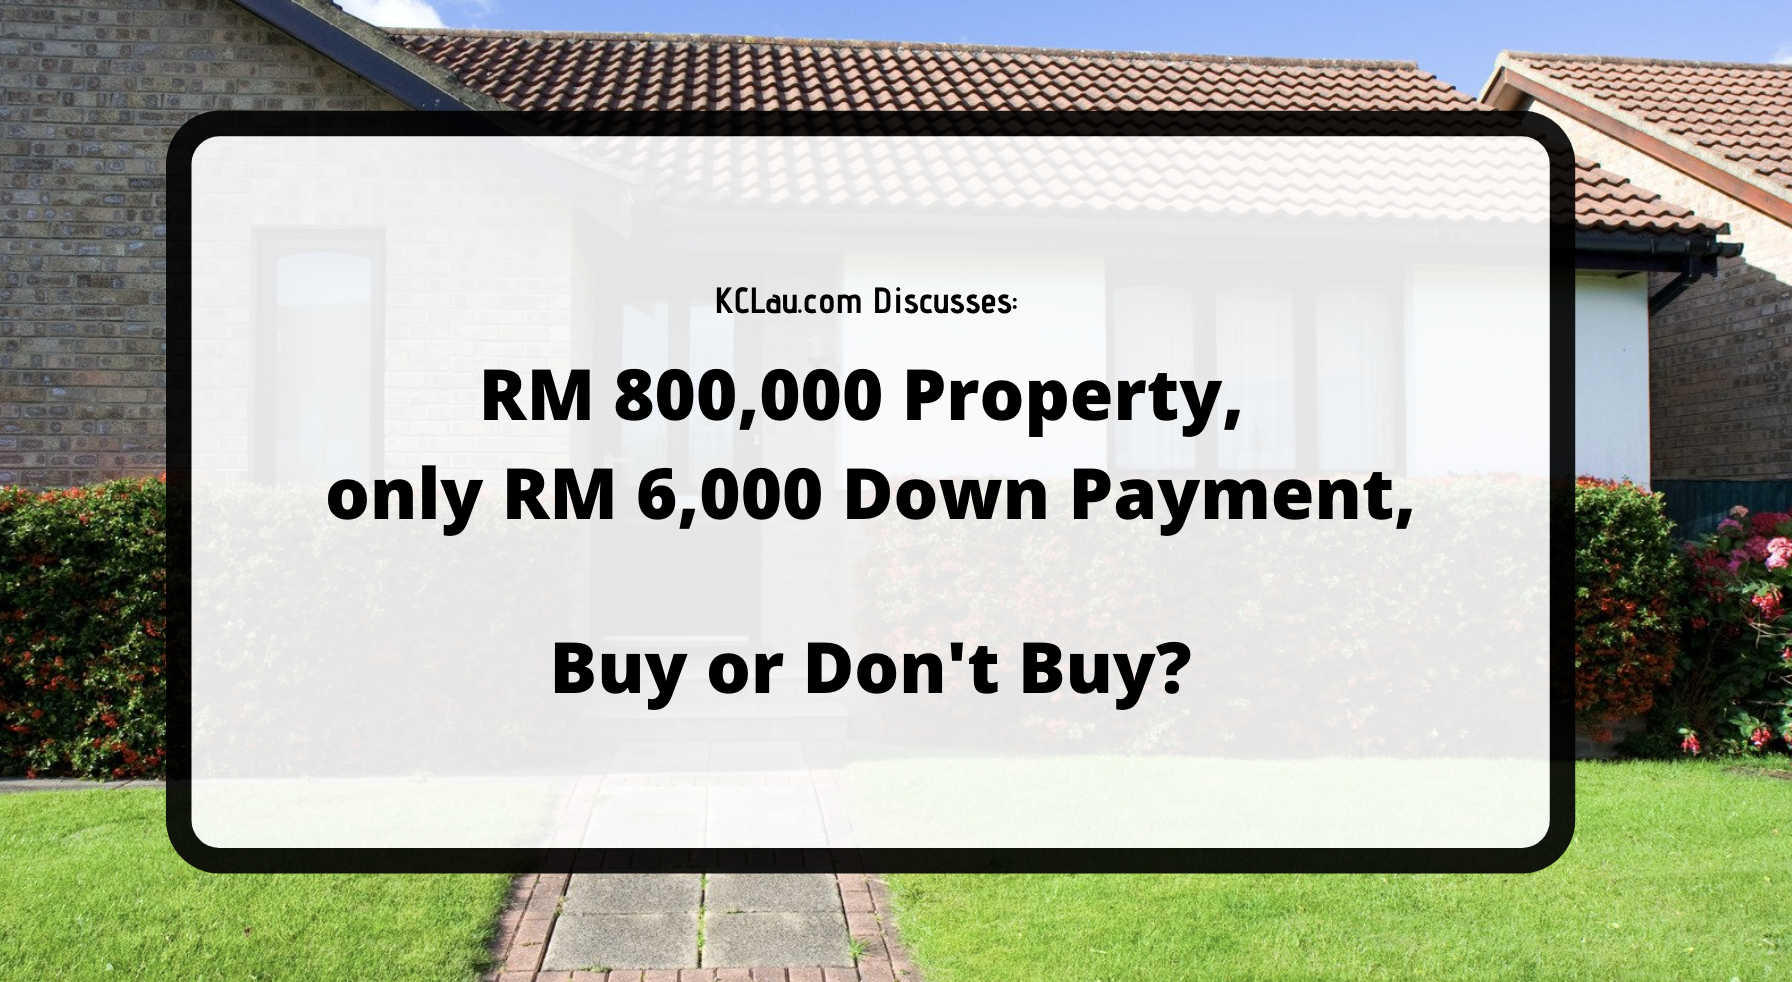 RM 800,000 Property, Only RM 6,000 in Down Payment, to Buy or Not to Buy?